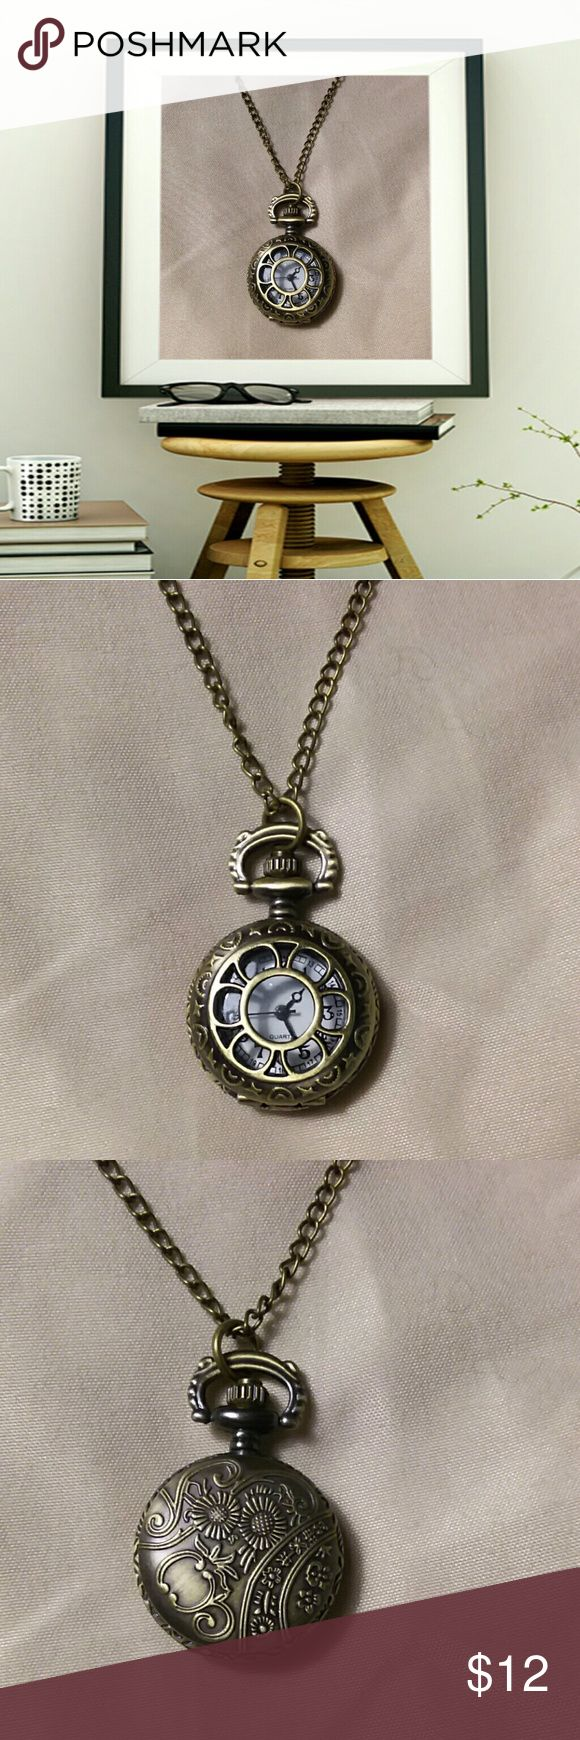 "Bronze quartz pocket watch pendant chain necklace Vintage bronze quartz pocket watch pendant chain necklace.  30"" chain.  Battery has died, in the process of putting a new one in. Will be back up for sell soon. New. Jewelry Necklaces"